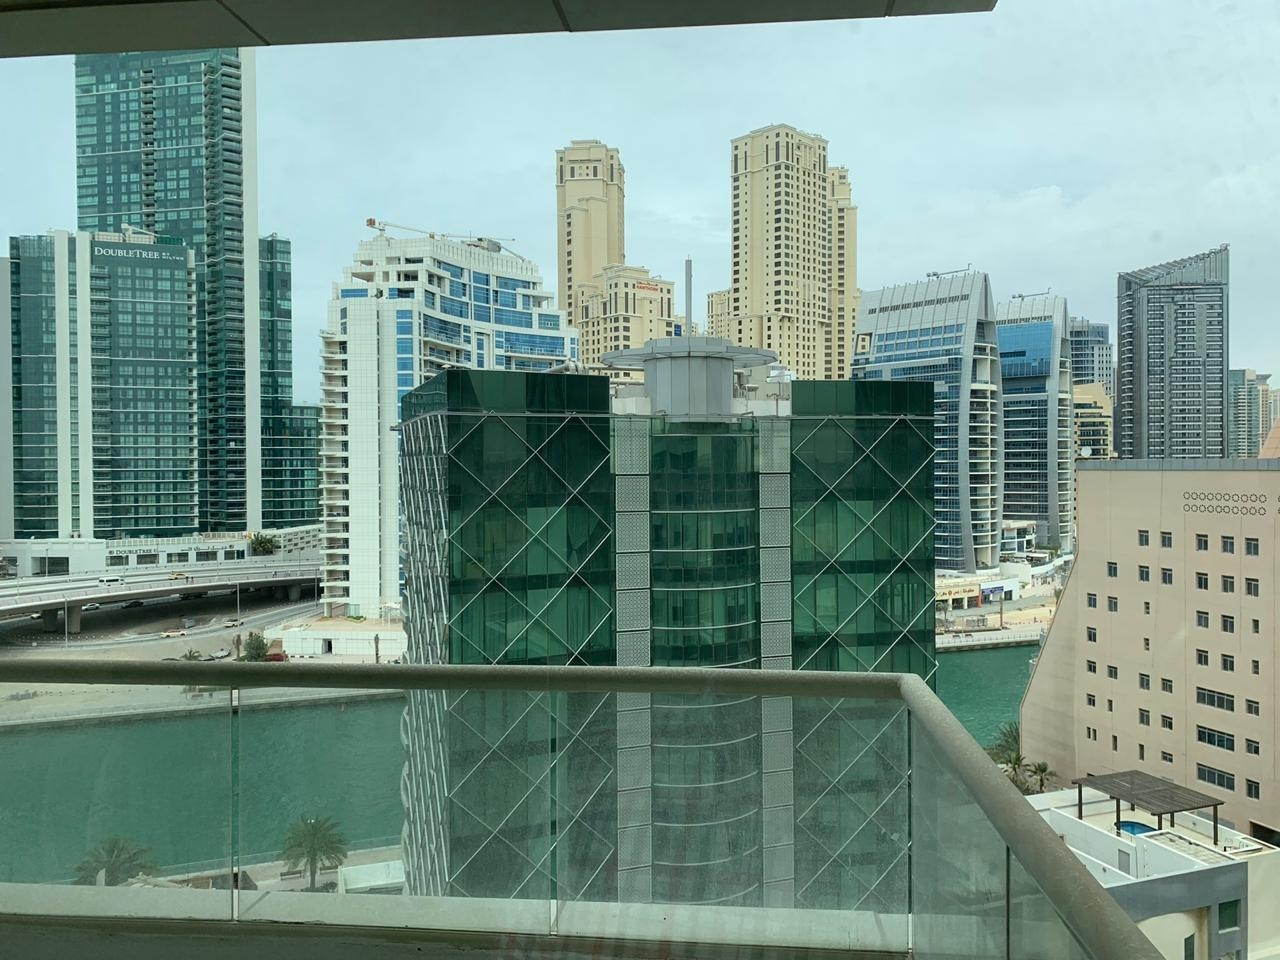 Specious 3 Bedroom apartment for rent AED 1,18,000/- by 4 Cheques in KG Tower Dubai Marina